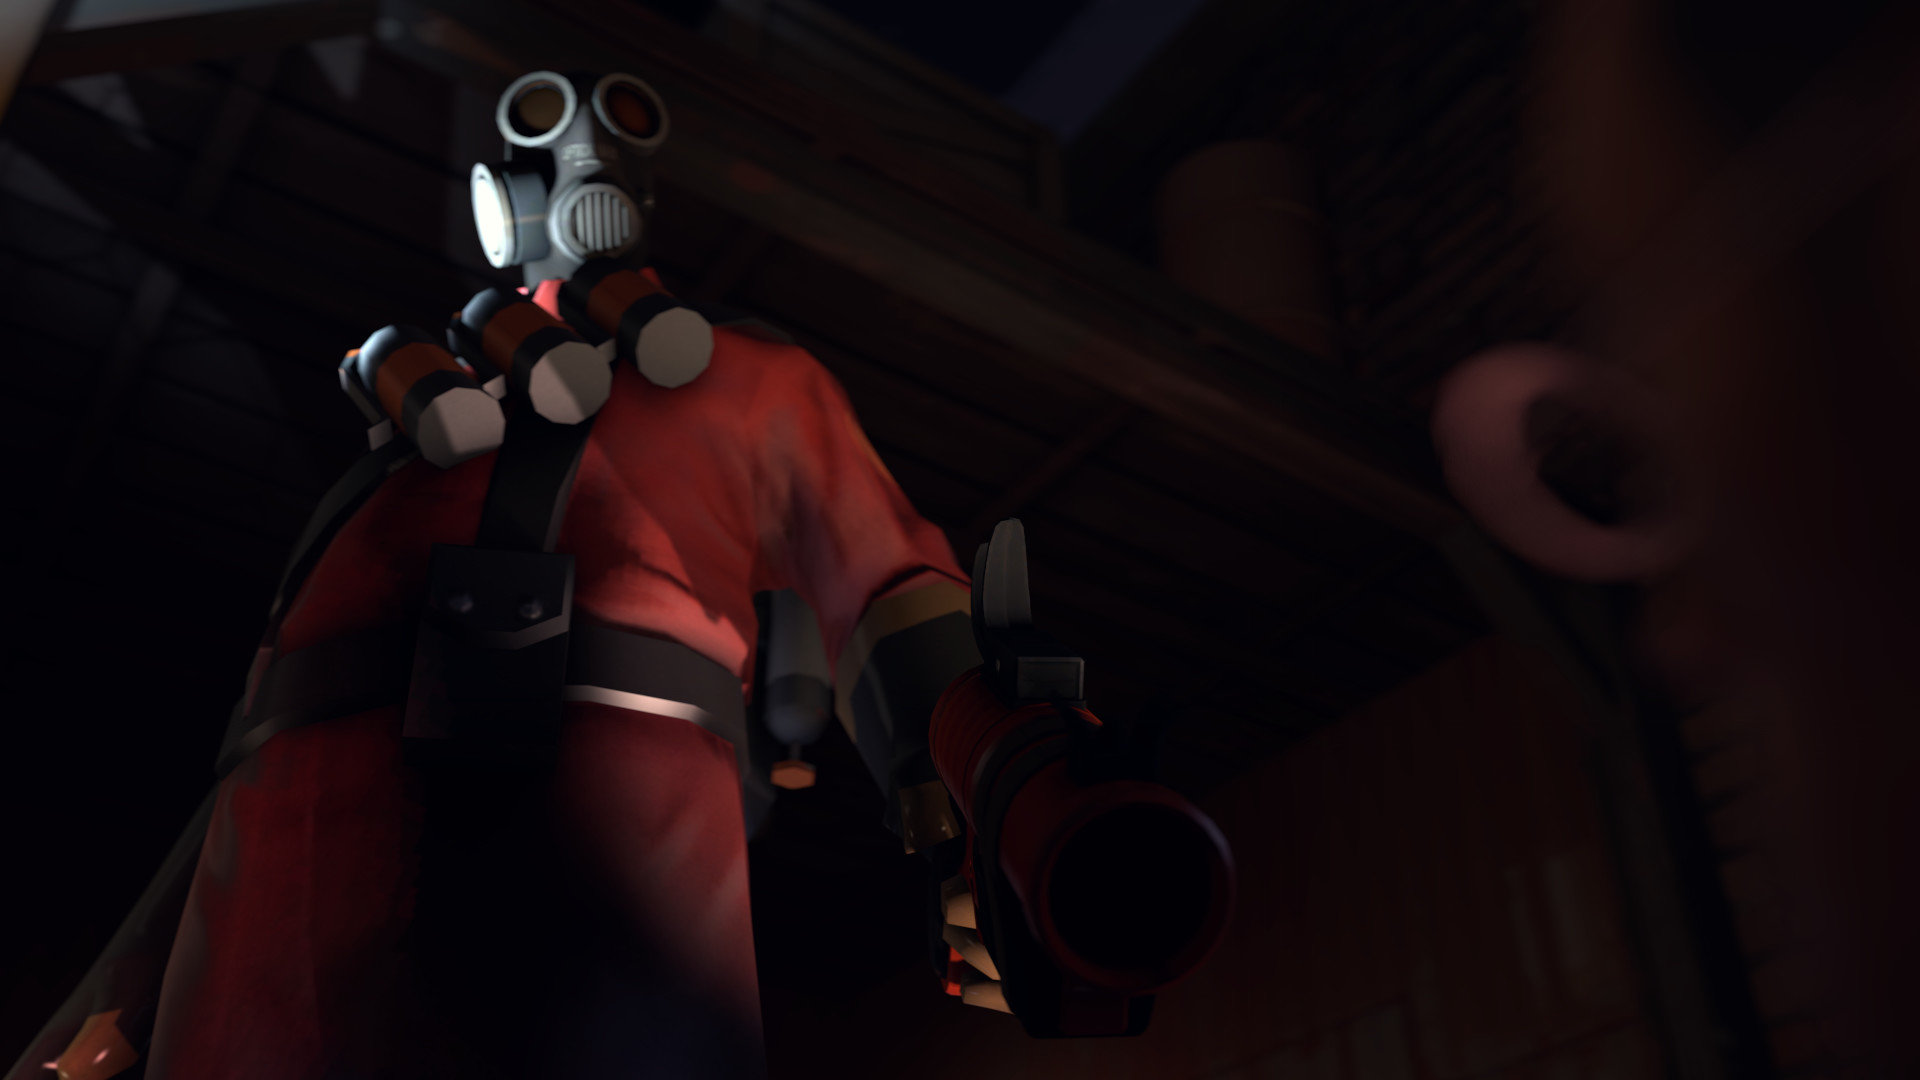 High resolution Team Fortress 2 (TF2) full hd 1080p wallpaper ID:432140 for PC